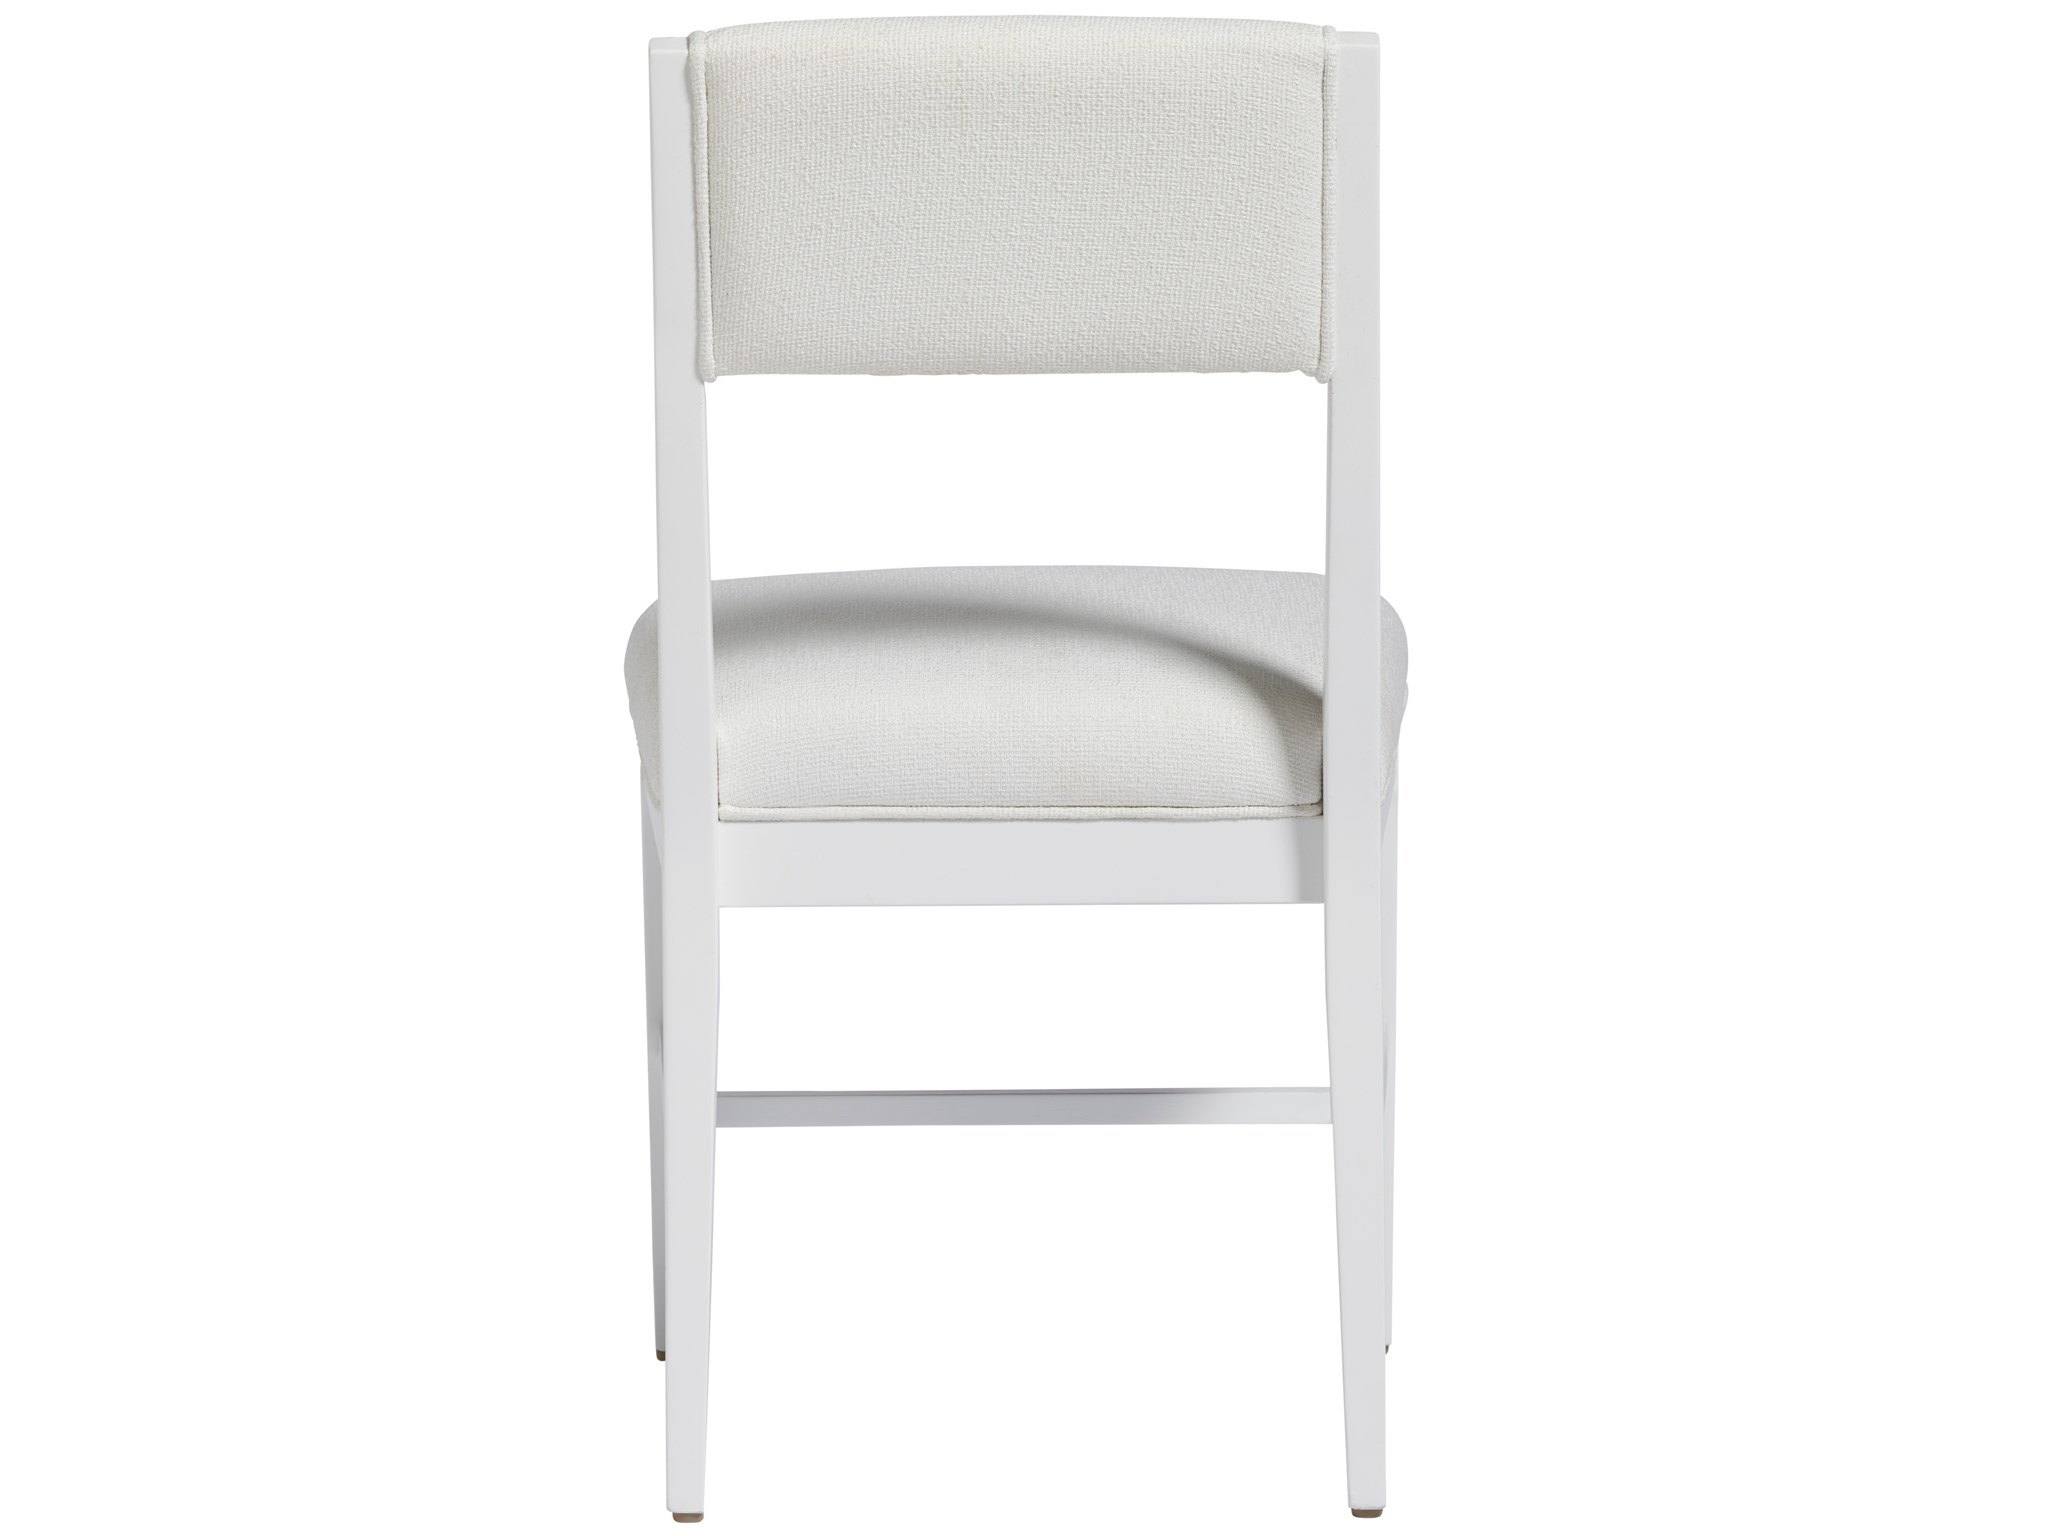 Presley Dining Chair